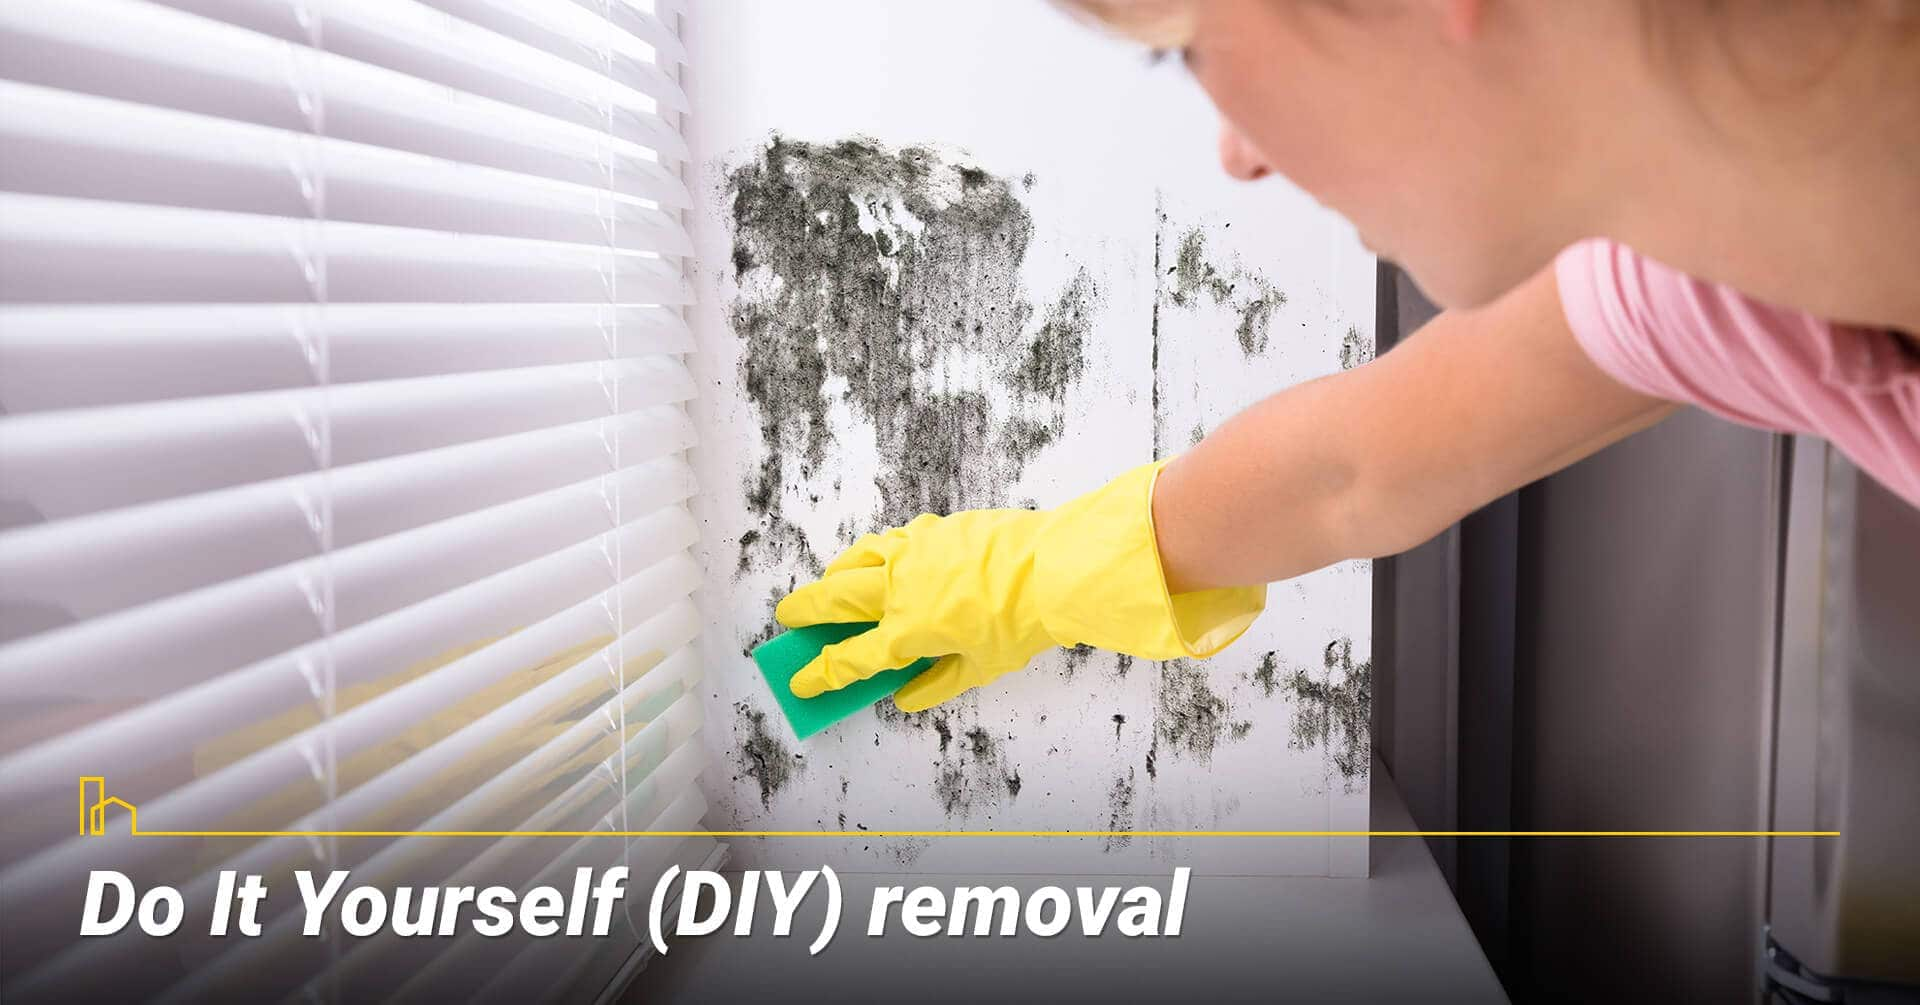 Do It Yourself (DIY) removal